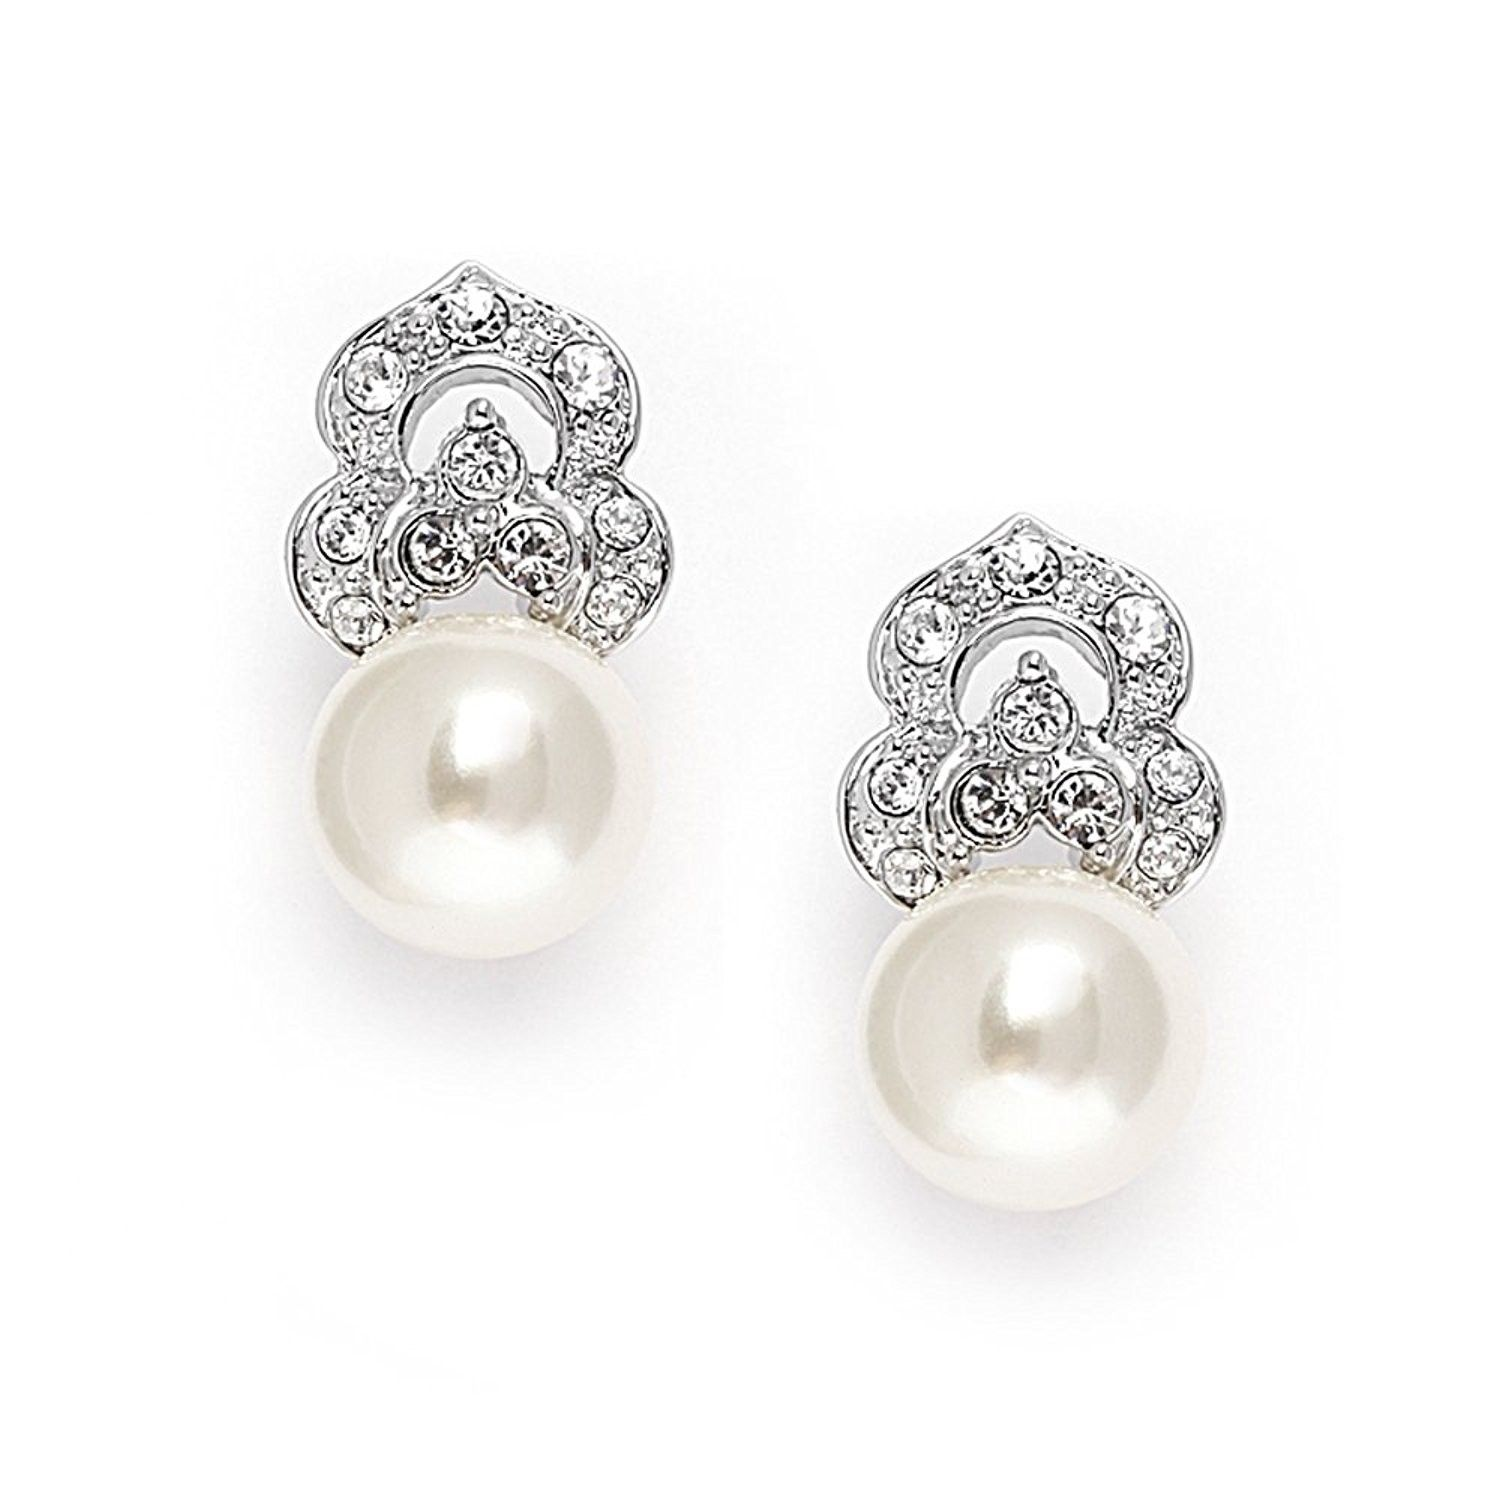 Clip On Pearl Bridal Earrings with Art Deco Vintage